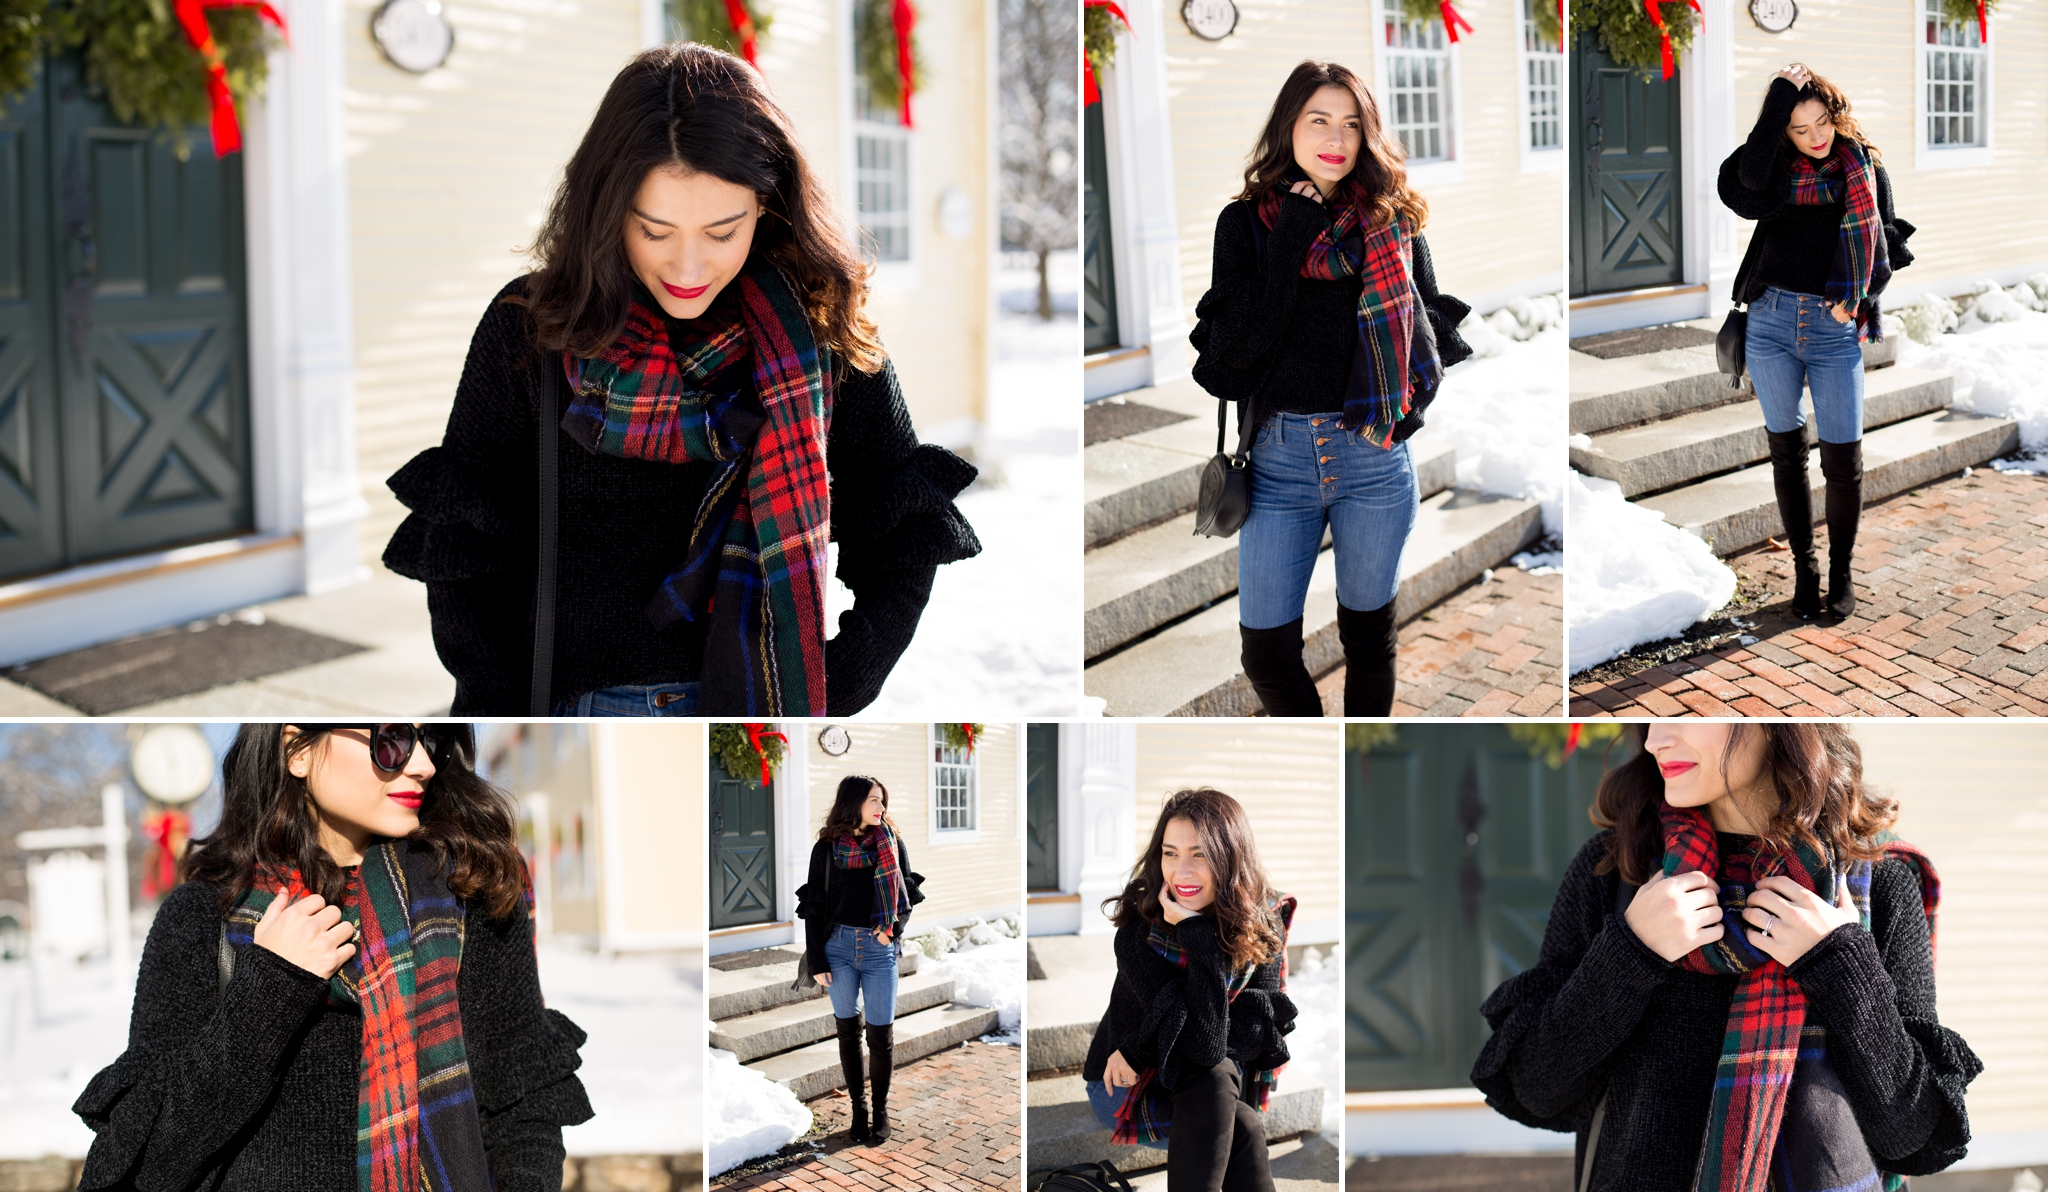 Snowy photos, winter wonderland, blog photography, pictures in the snow, flannel scarf, all black